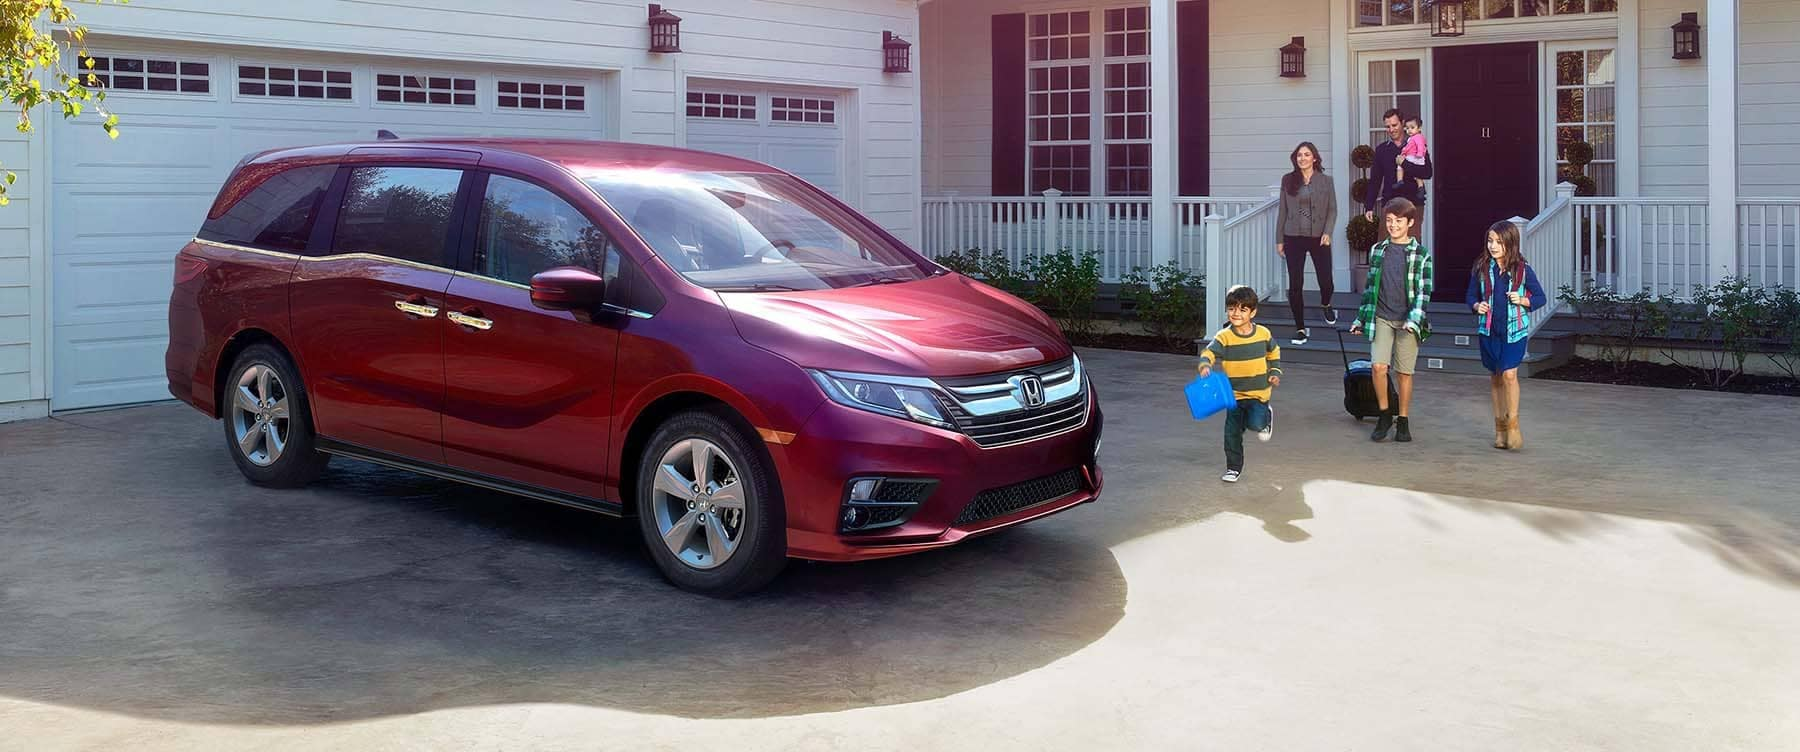 Family walking out of their home to a 2019 Honda Odyssey parked in the  driveway